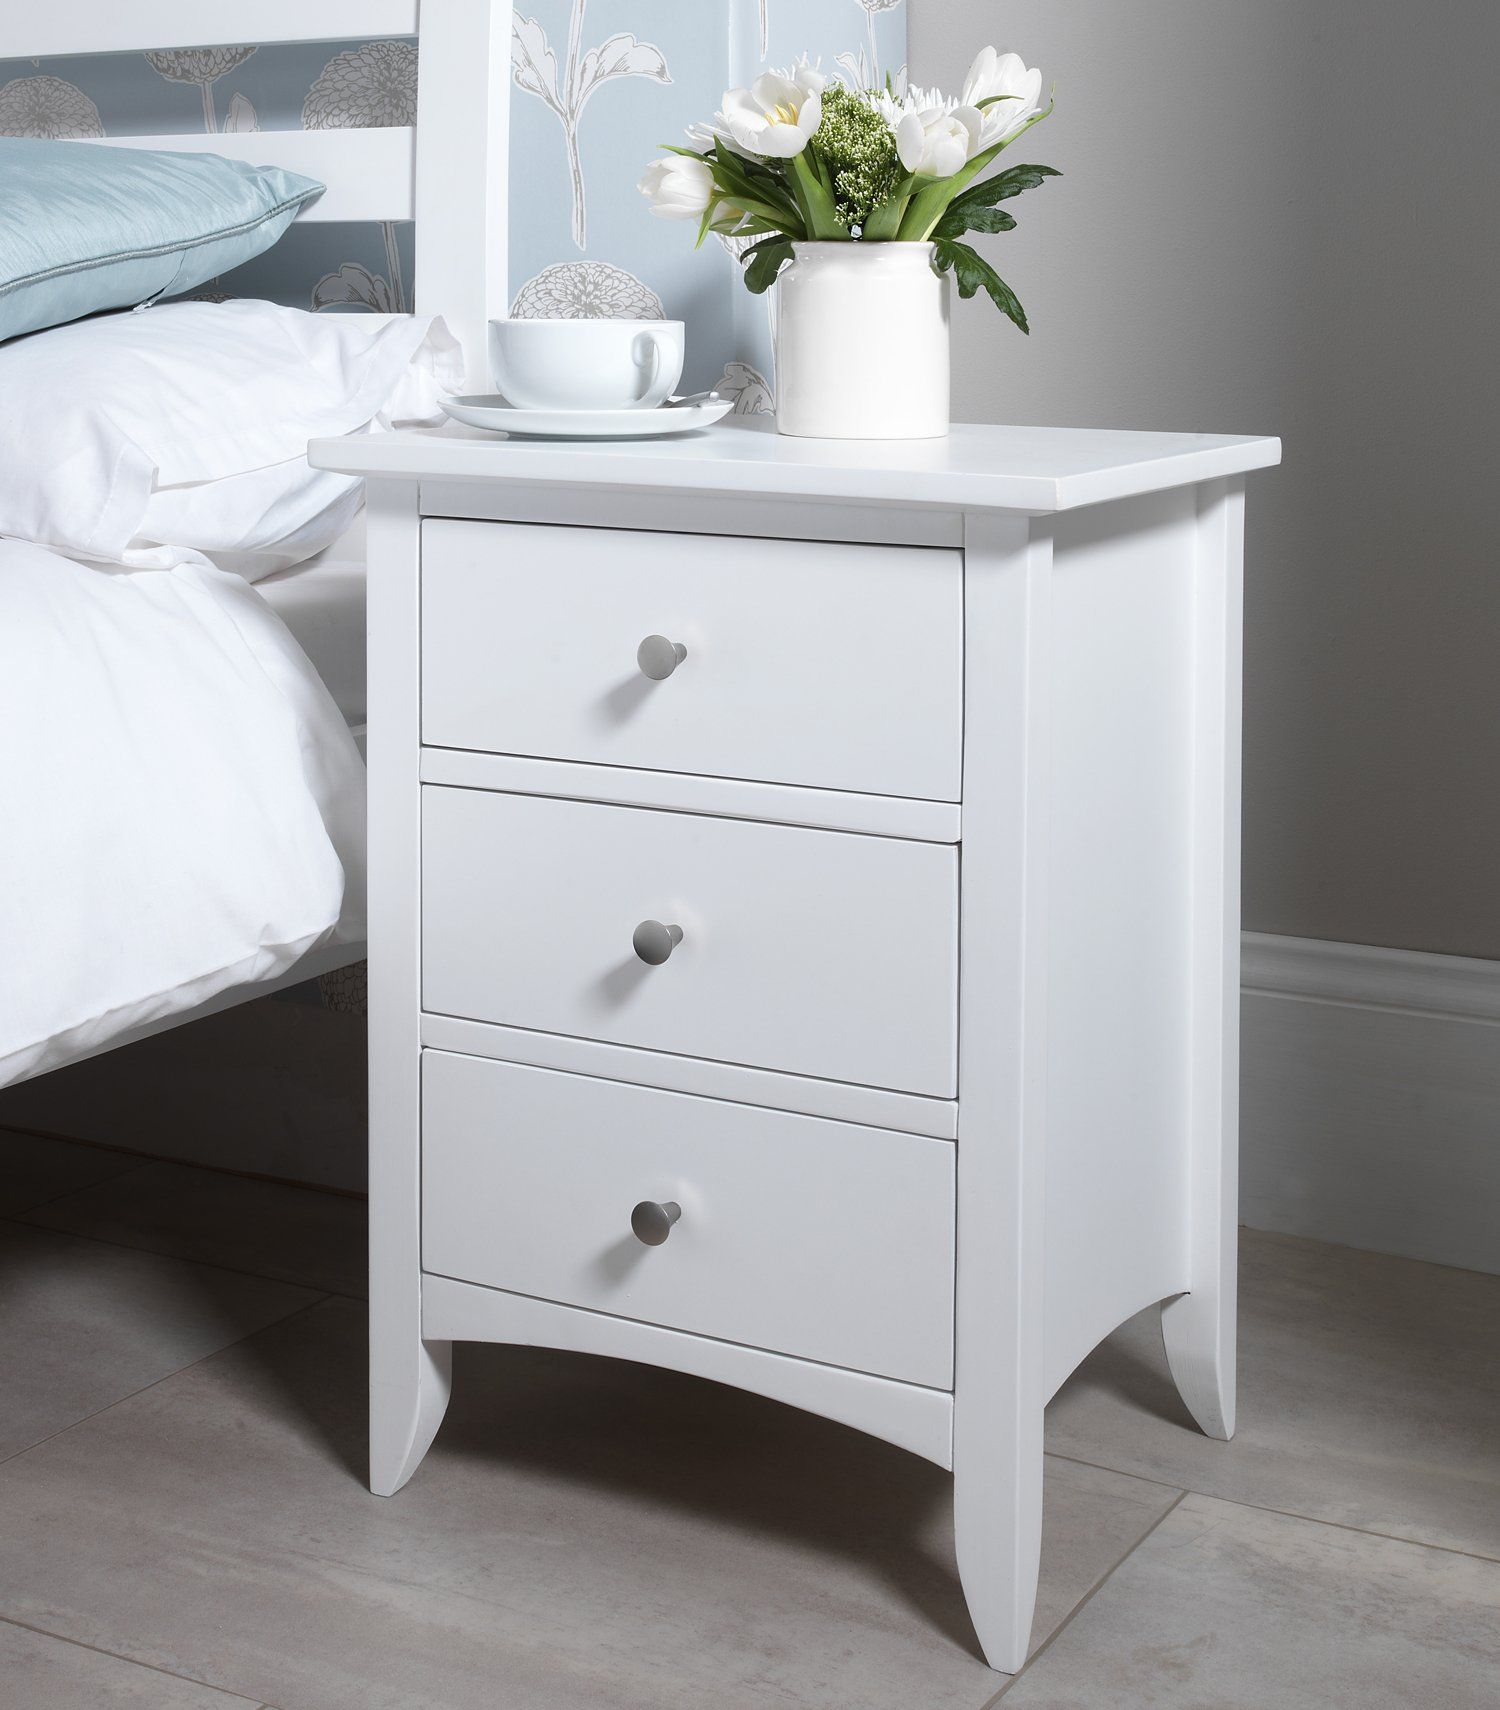 Edward Hopper white bedside table with 9 drawers, metal runners